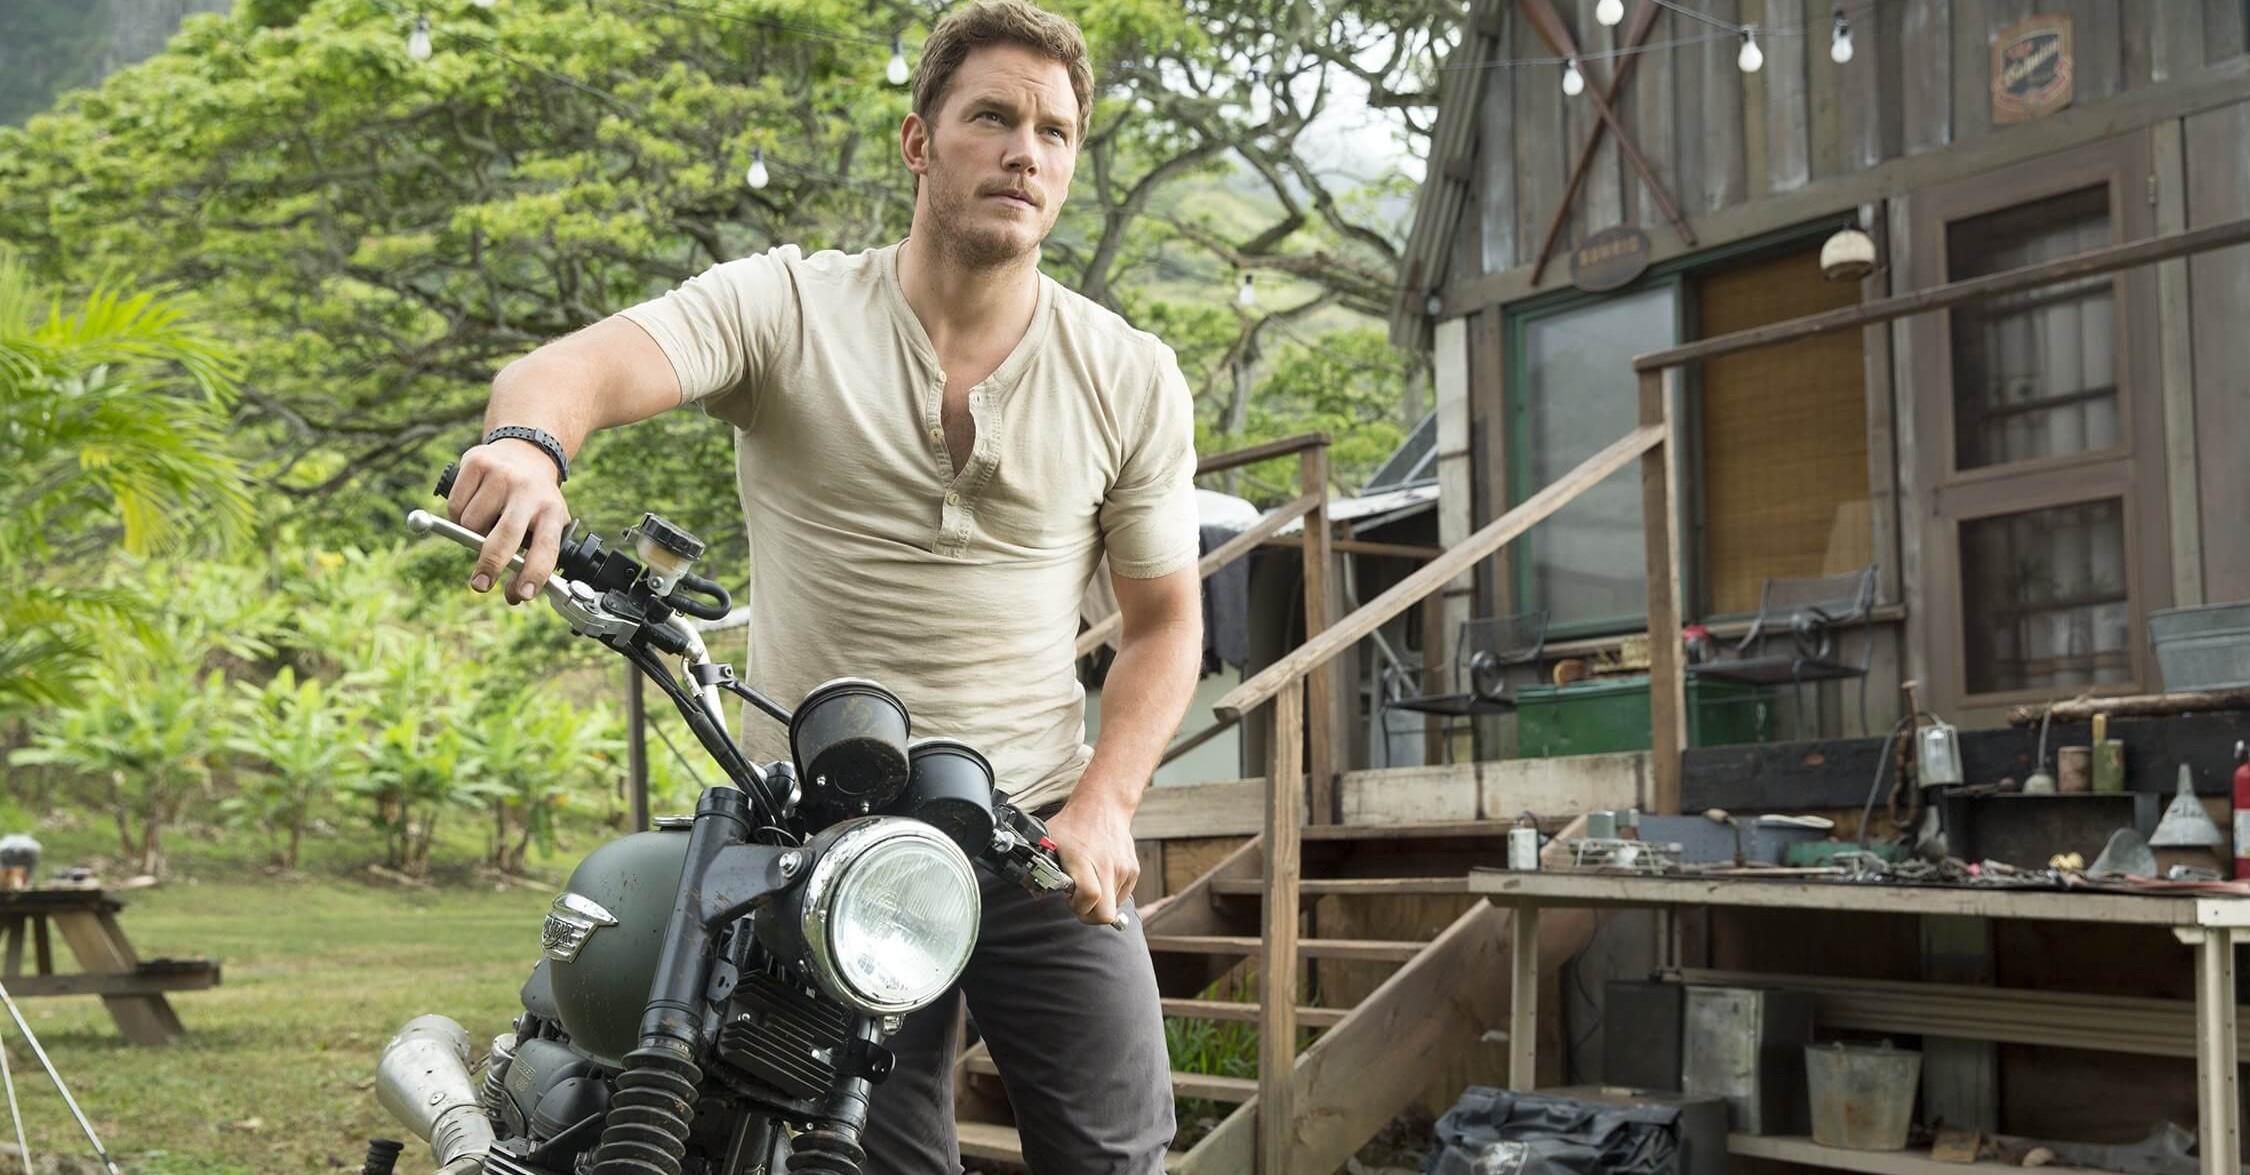 Chris Pratt's Motor from Jurassic World is set for Auction